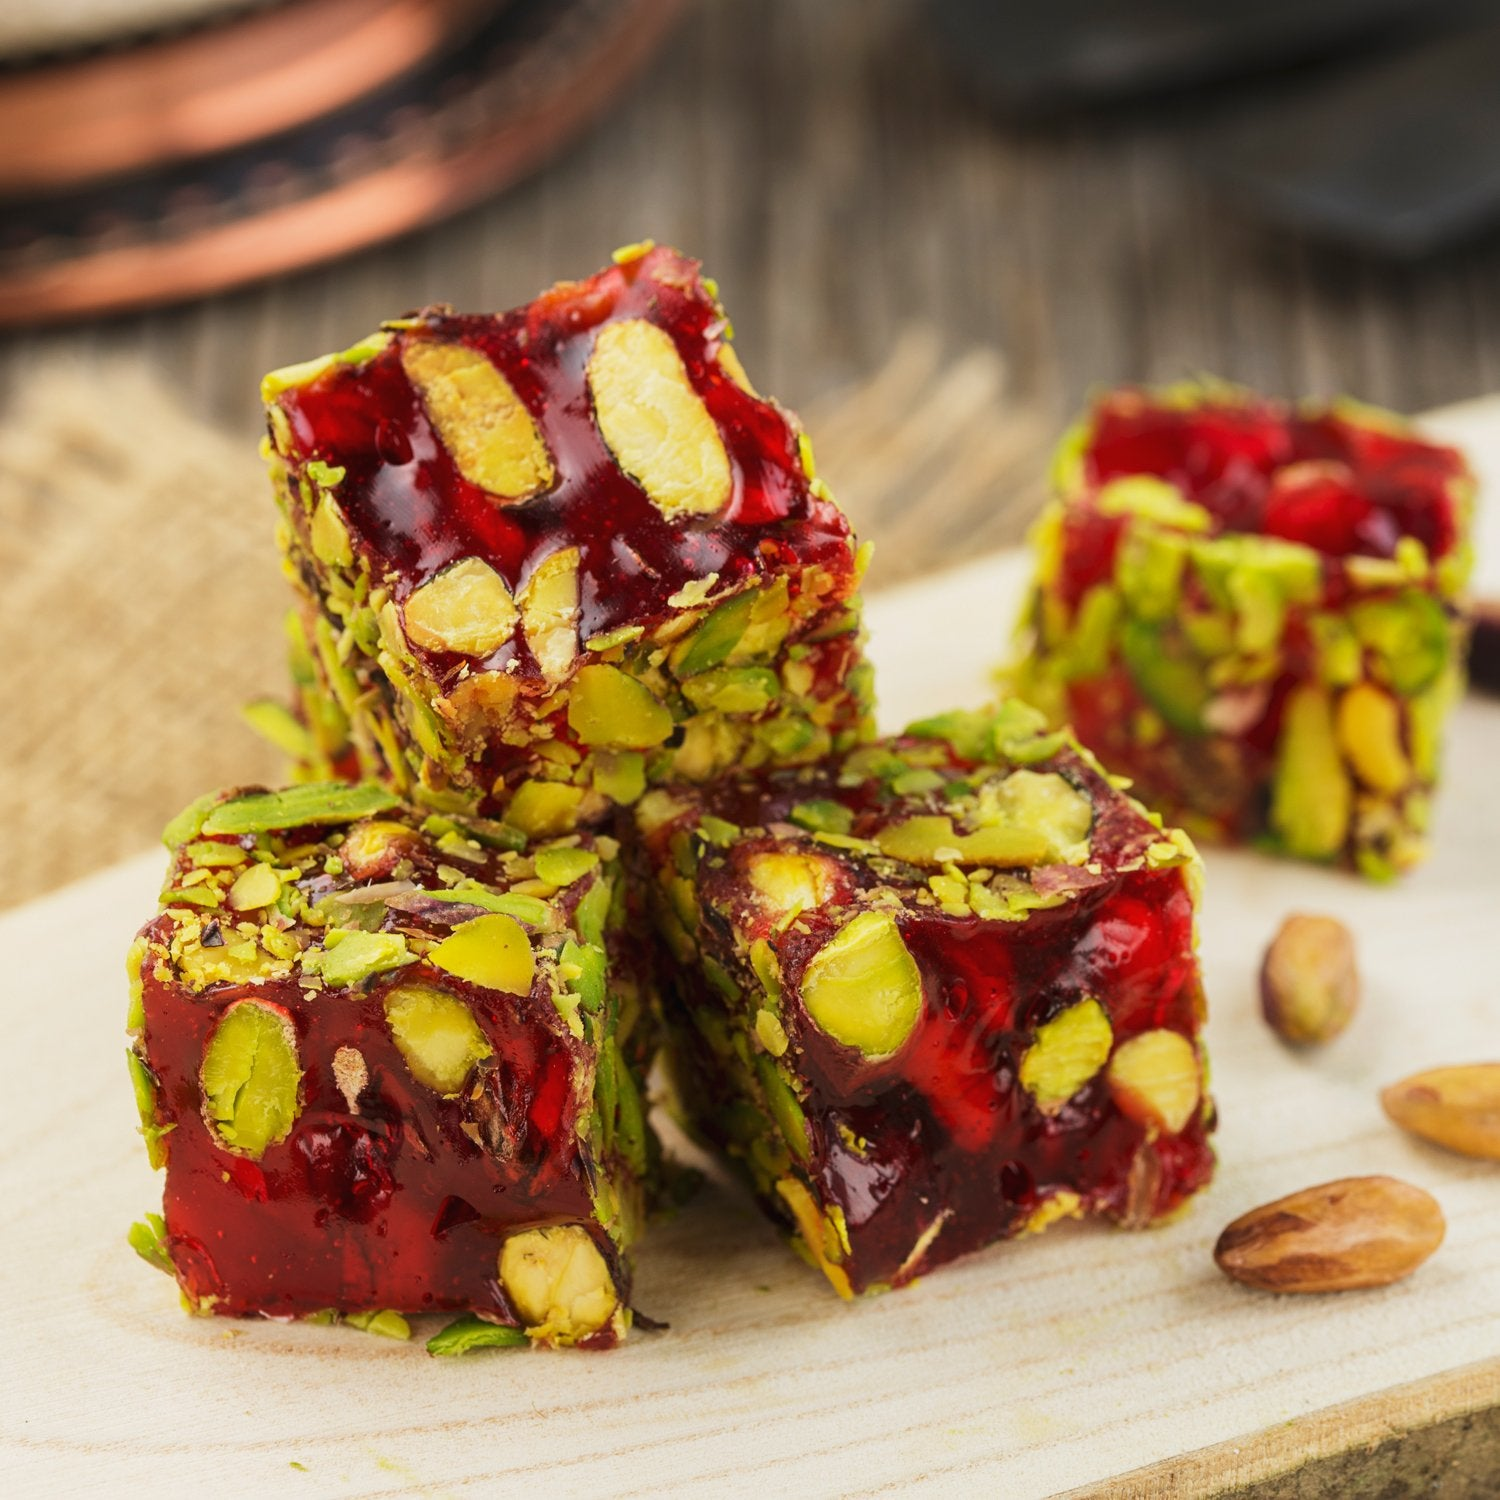 Pistachio & Pomegranate Delight